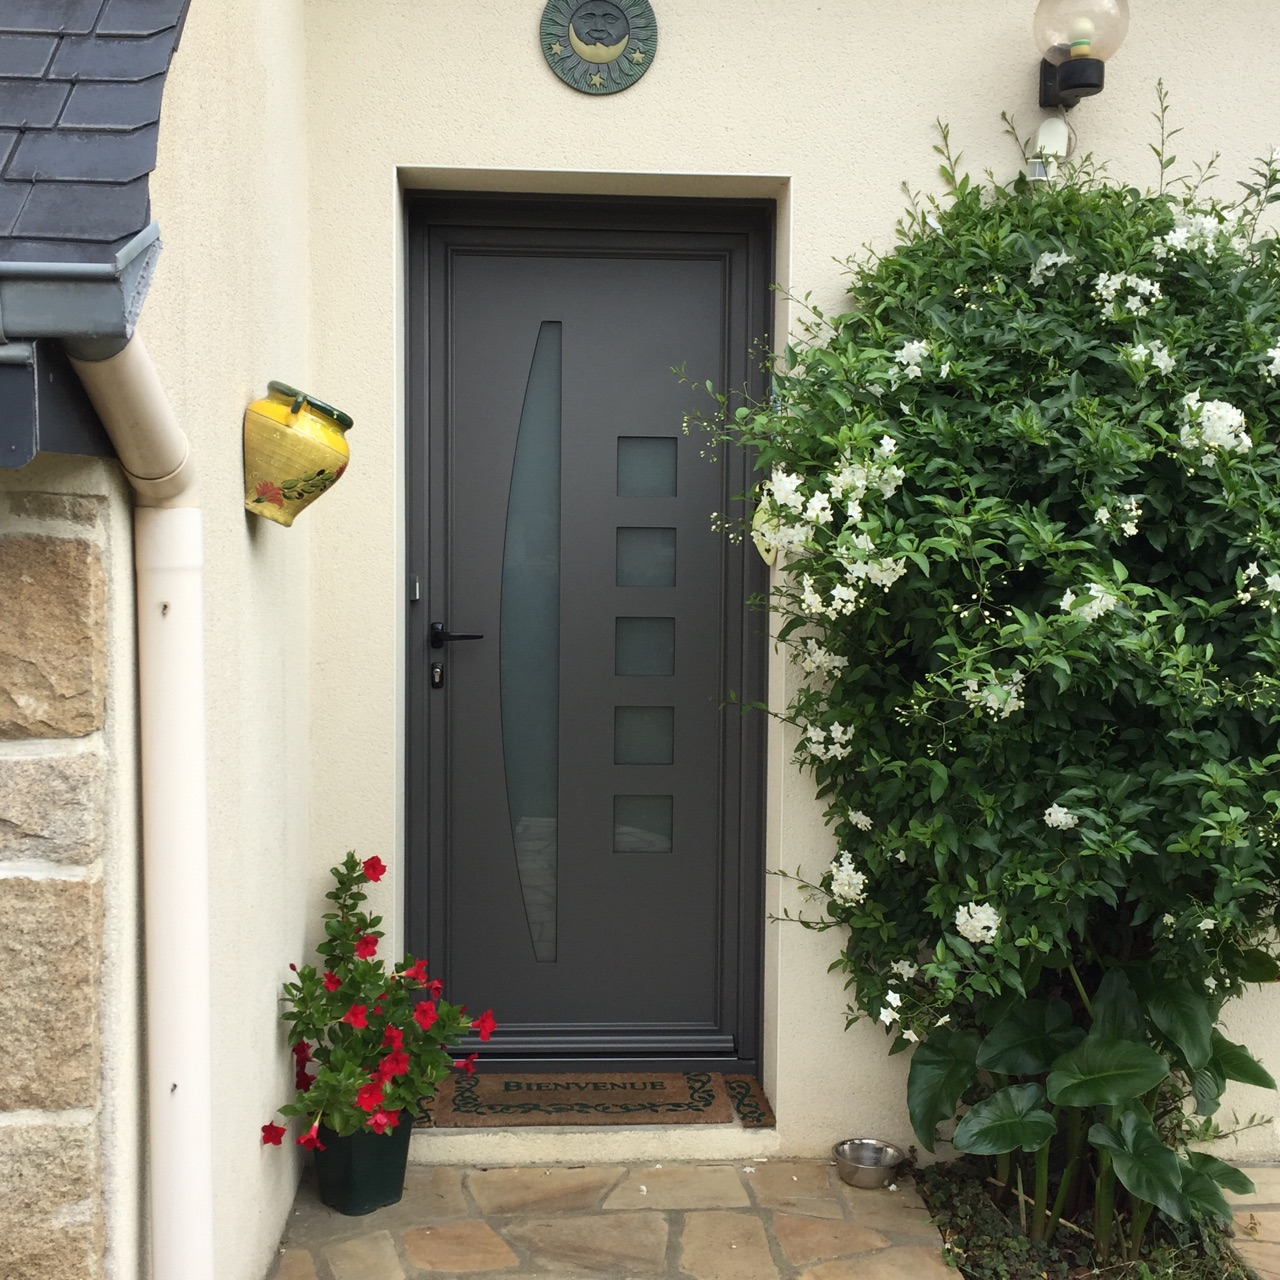 Renovation de porte d 39 entree a saint brieuc moderne et - Porte entree renovation ...